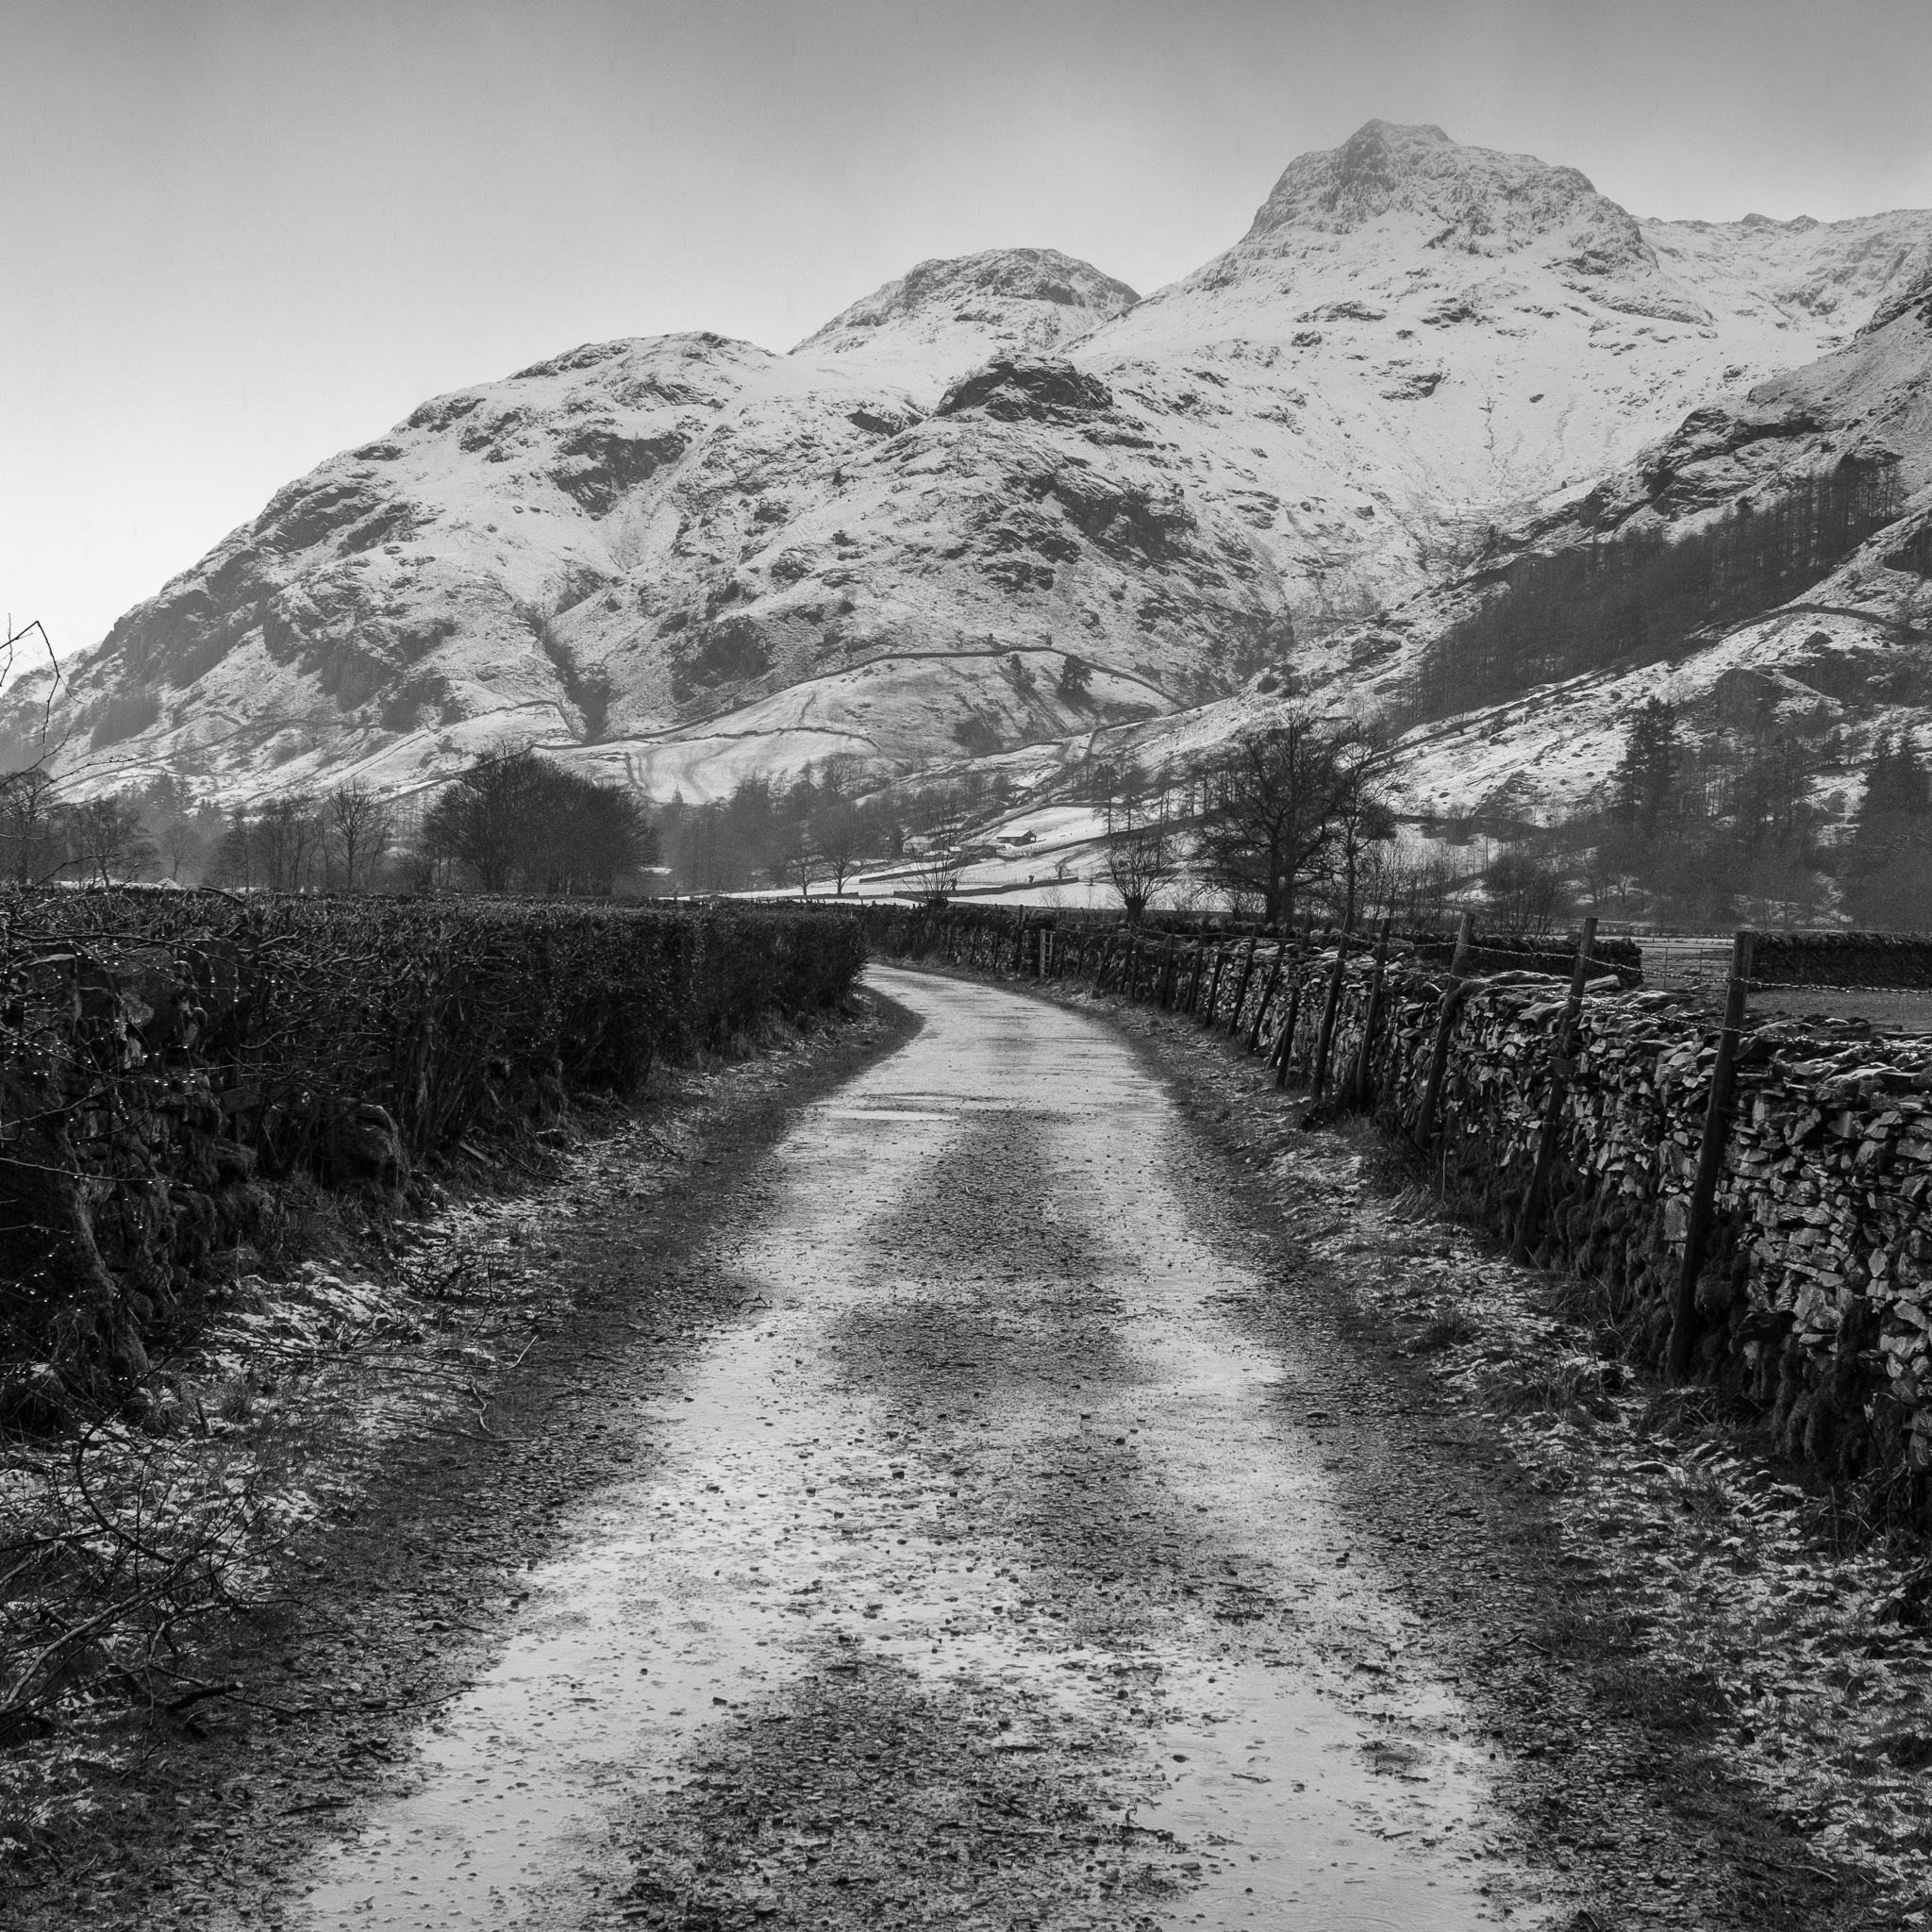 The Road to Great Langdale by stevetaylor520